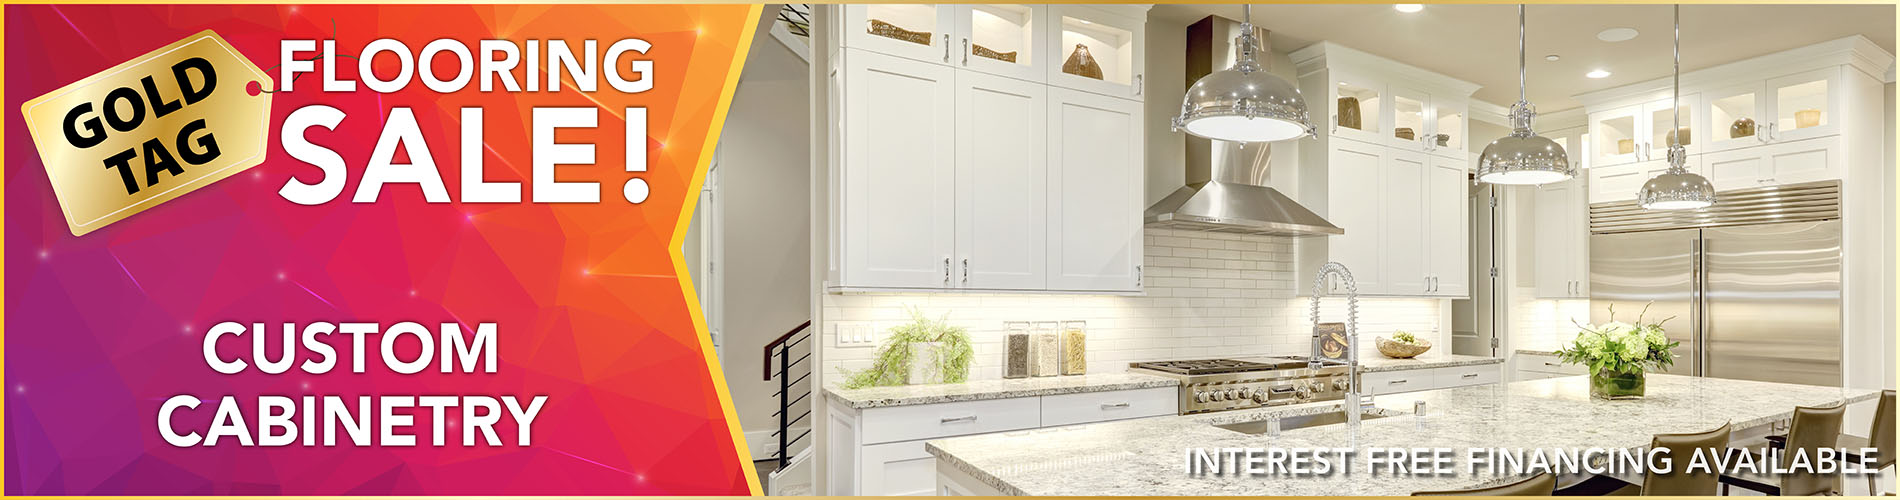 National Gold Tag Flooring Sale - Custom Cabinetry at Erskine Interiors